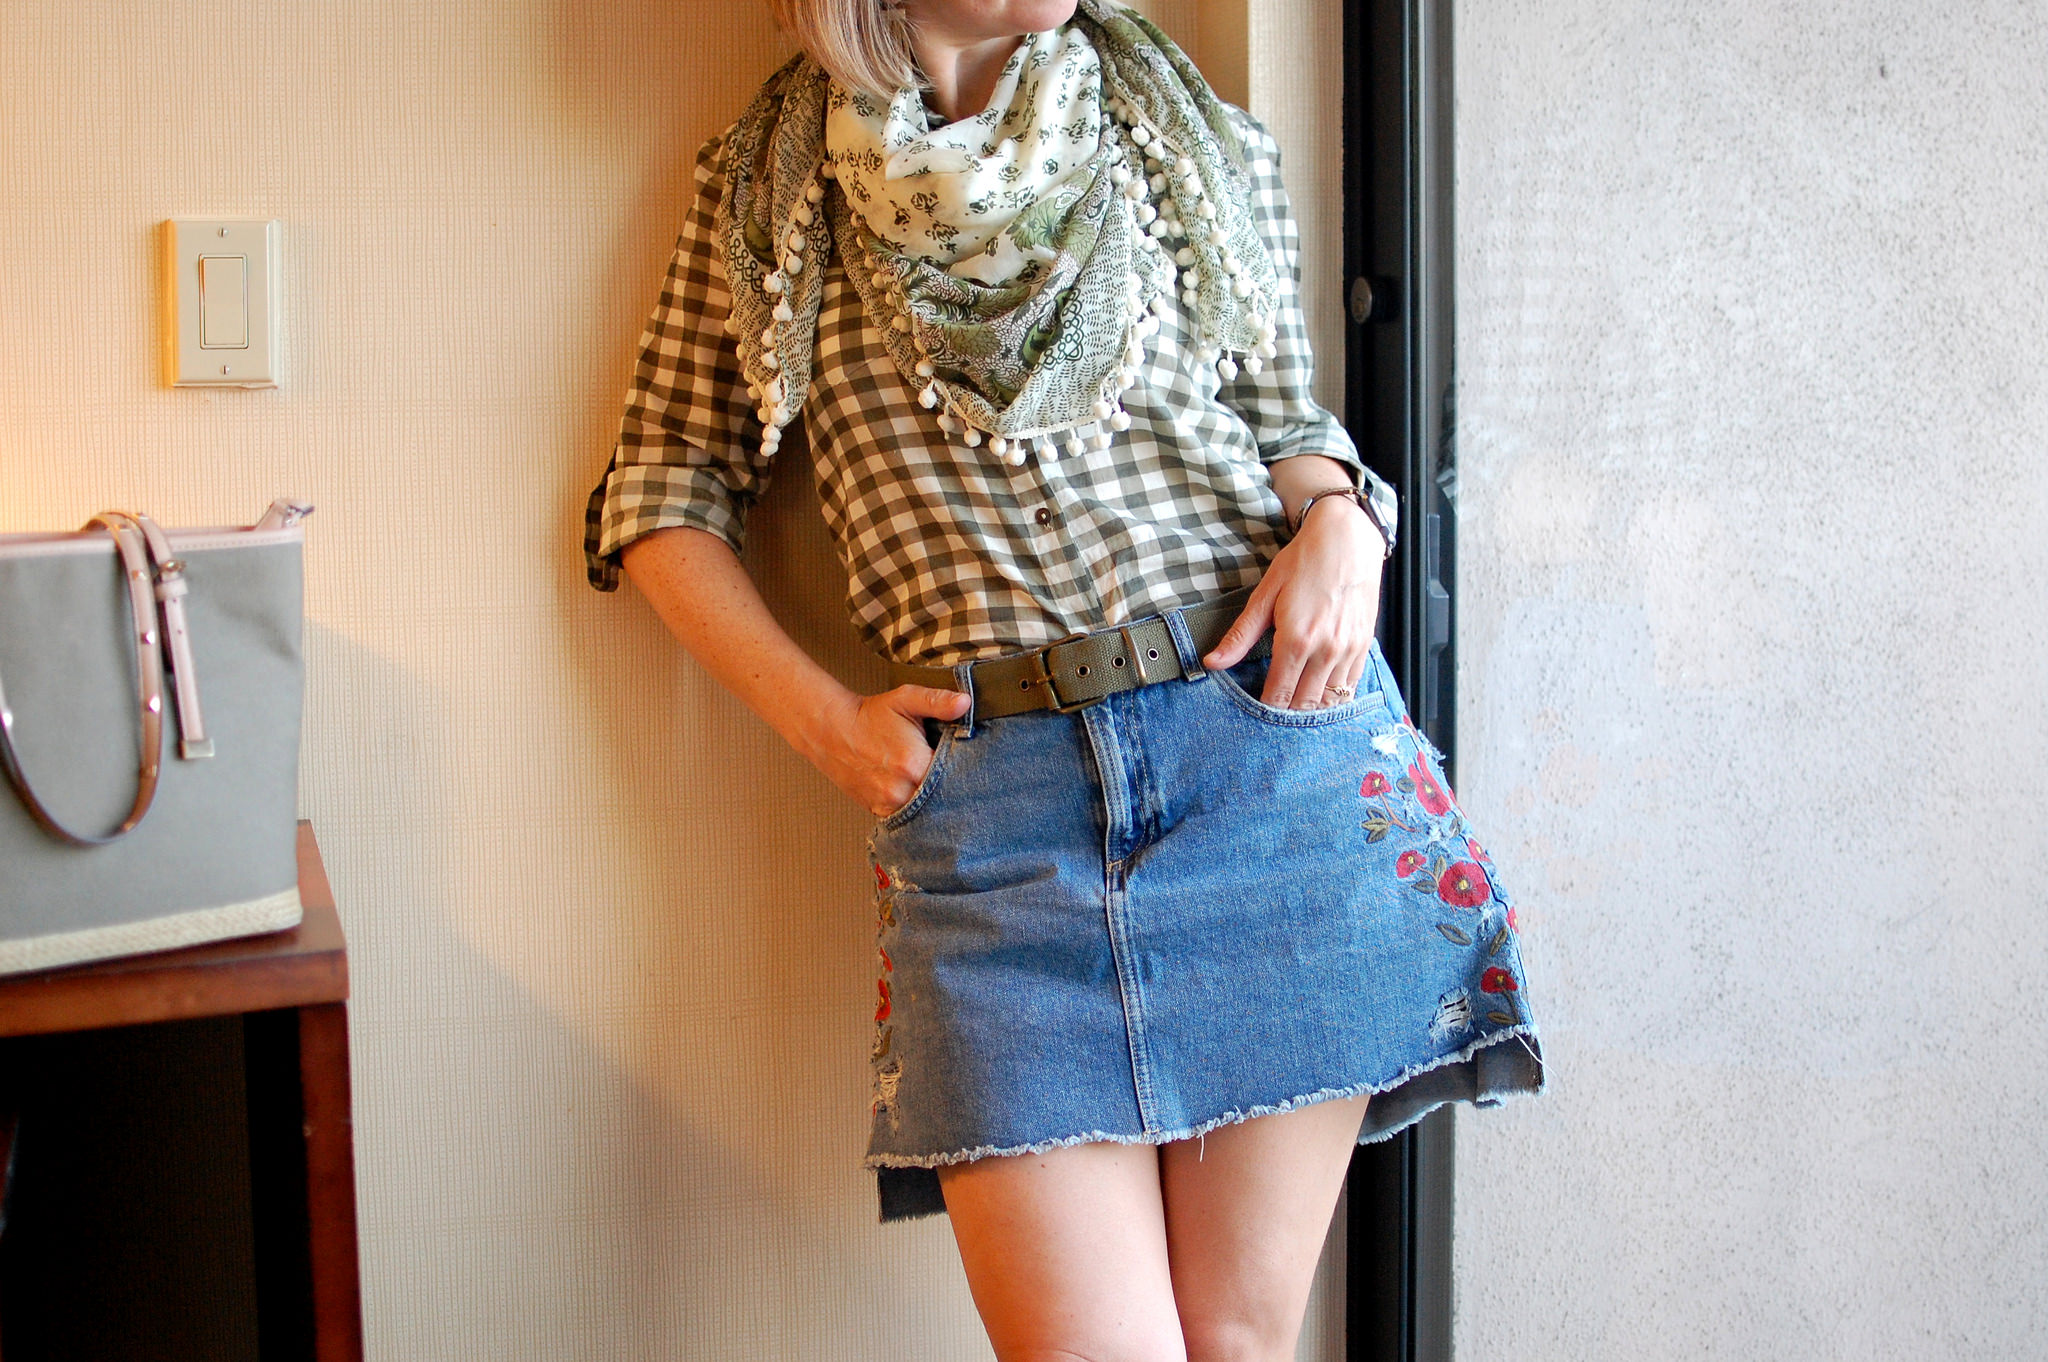 pompom scarf paisley gingham olive pattern mix ootd daily outfit blog whatiwore2day